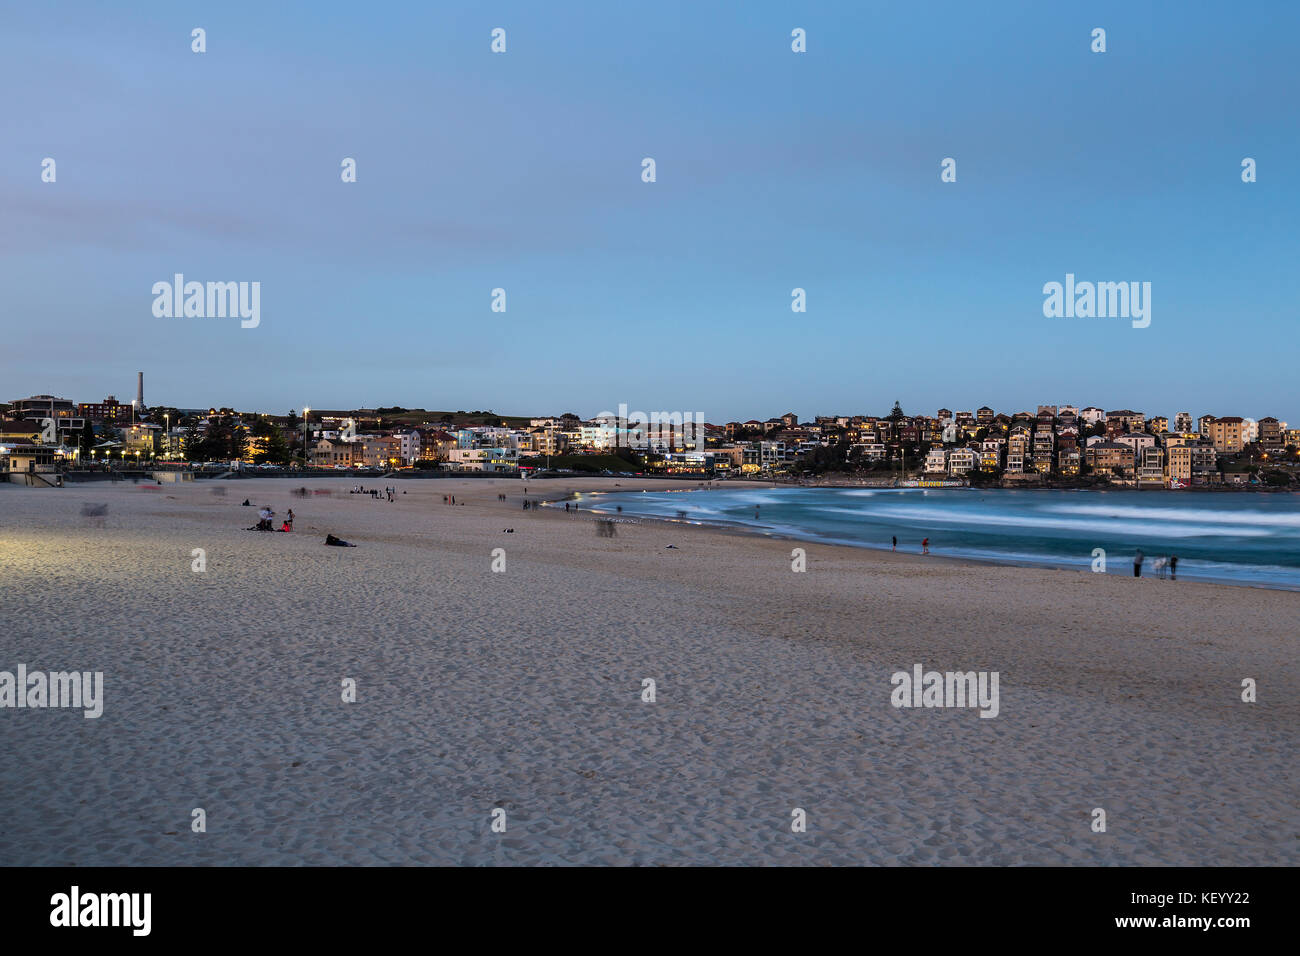 Bondi Beach early evening taken with a slow shutter speed to show movement on the ocean, Sydney, Australia. - Stock Image